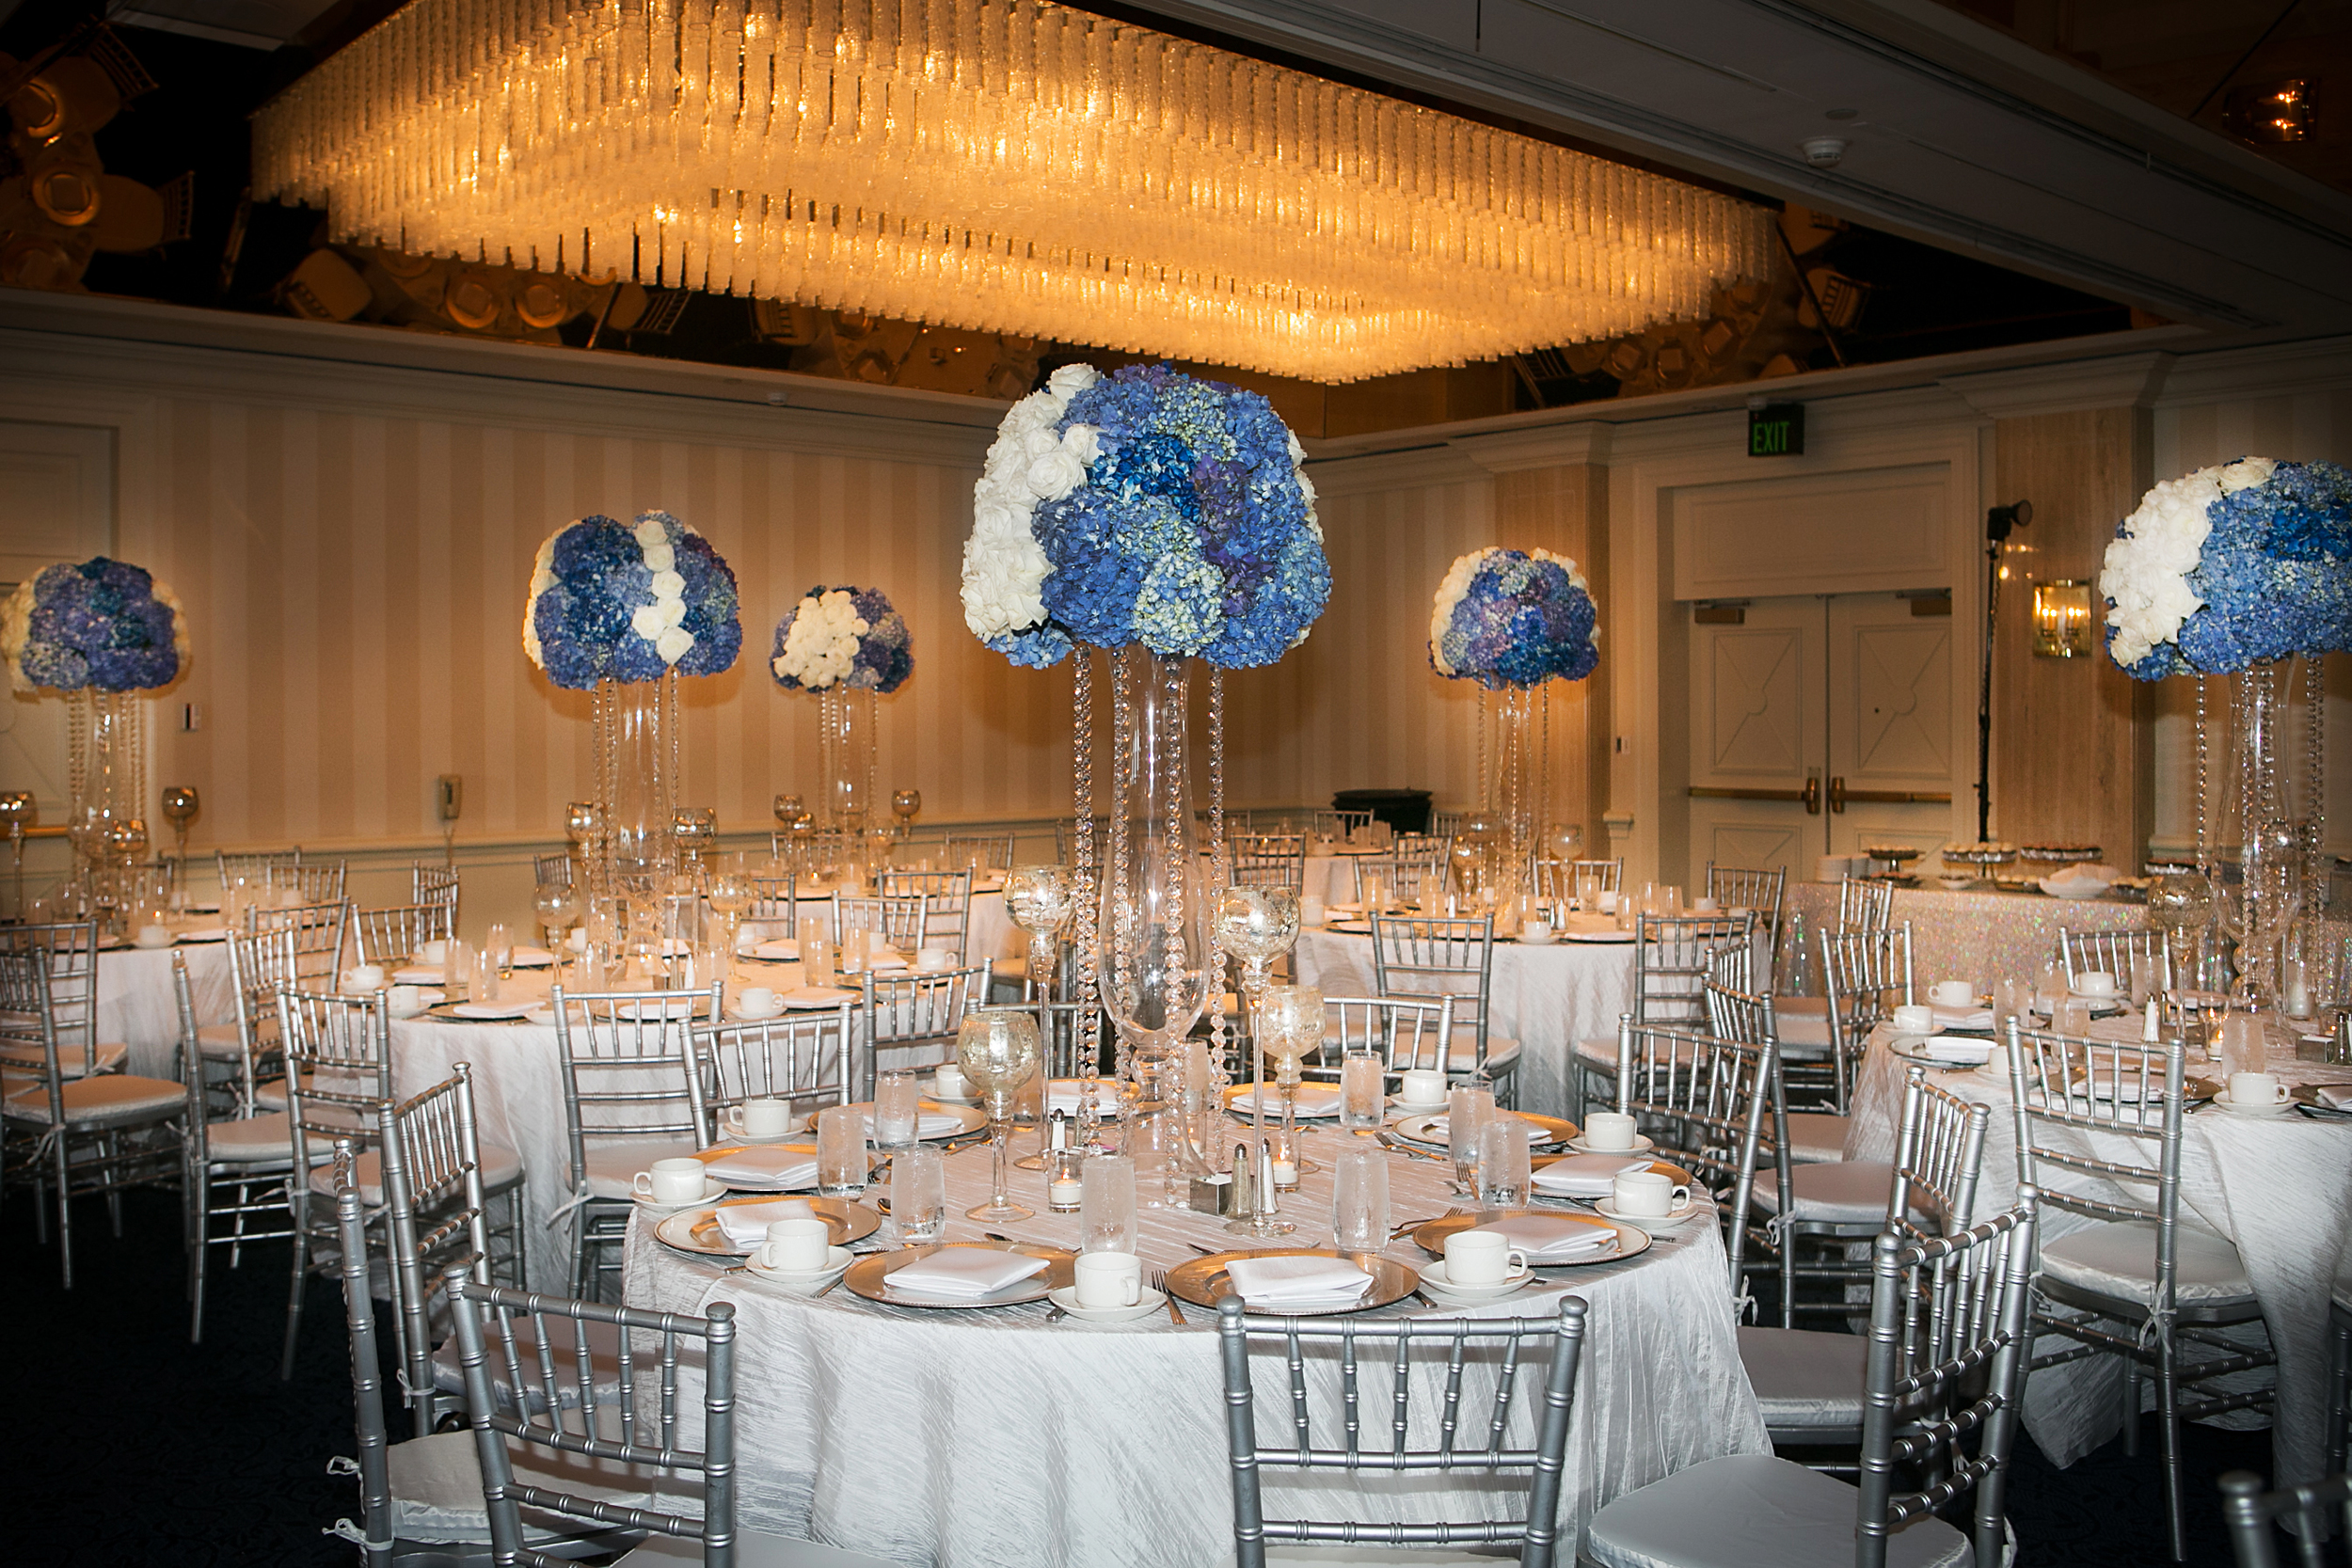 16_White and Blue Centerpiece_ArtQuest Flowers.jpg